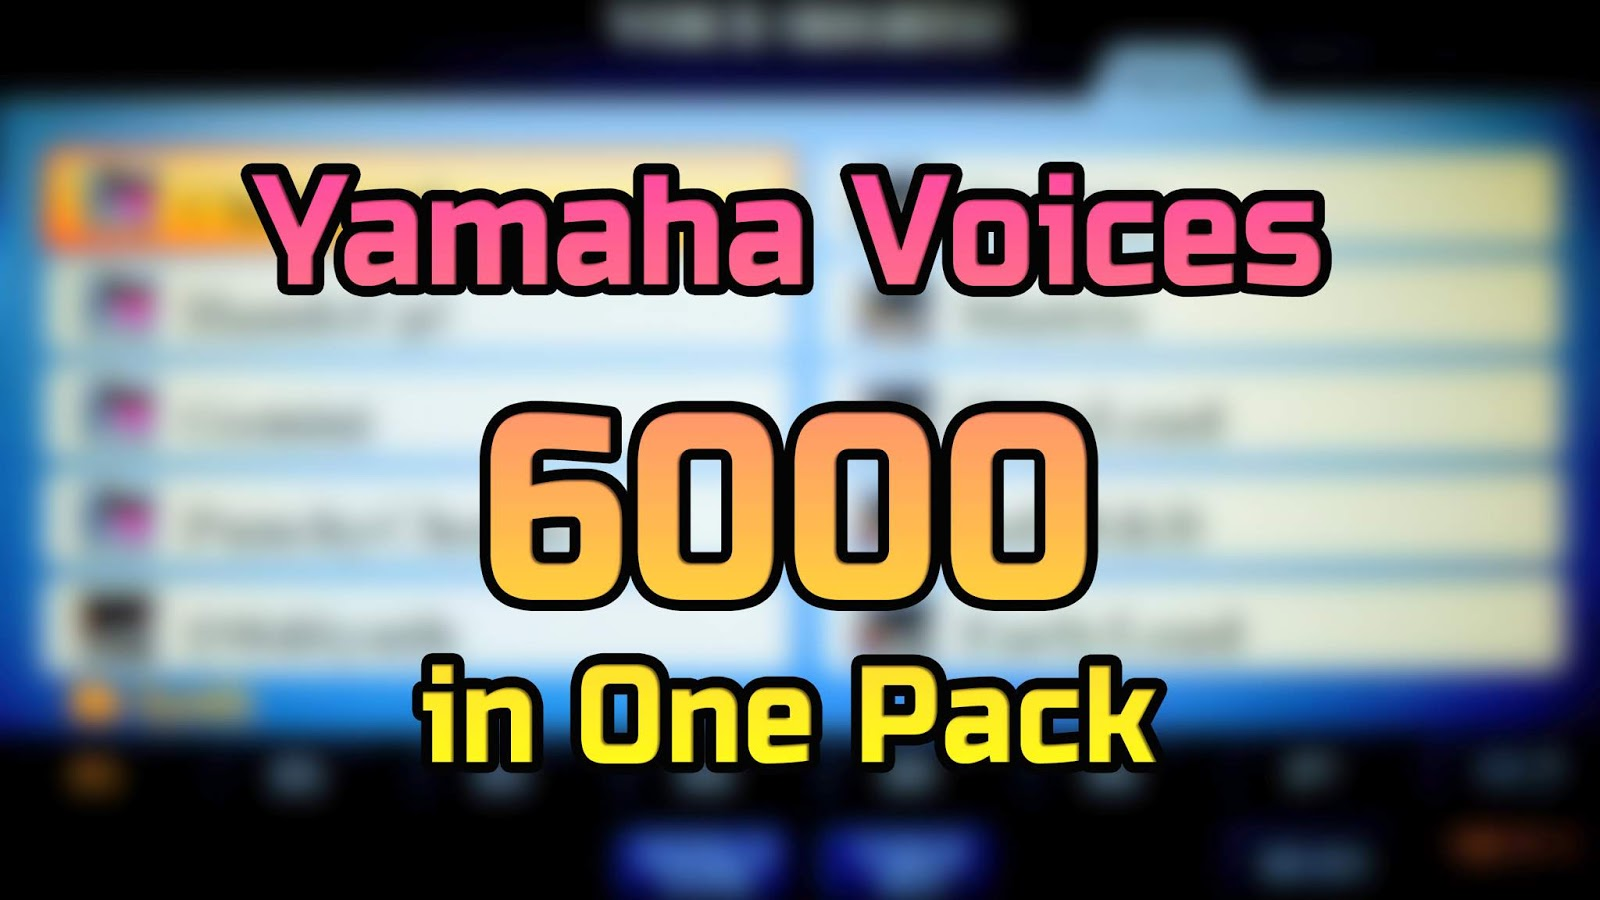 Yamaha Voices 6000 in One Pack Free Download - SoundsLanka